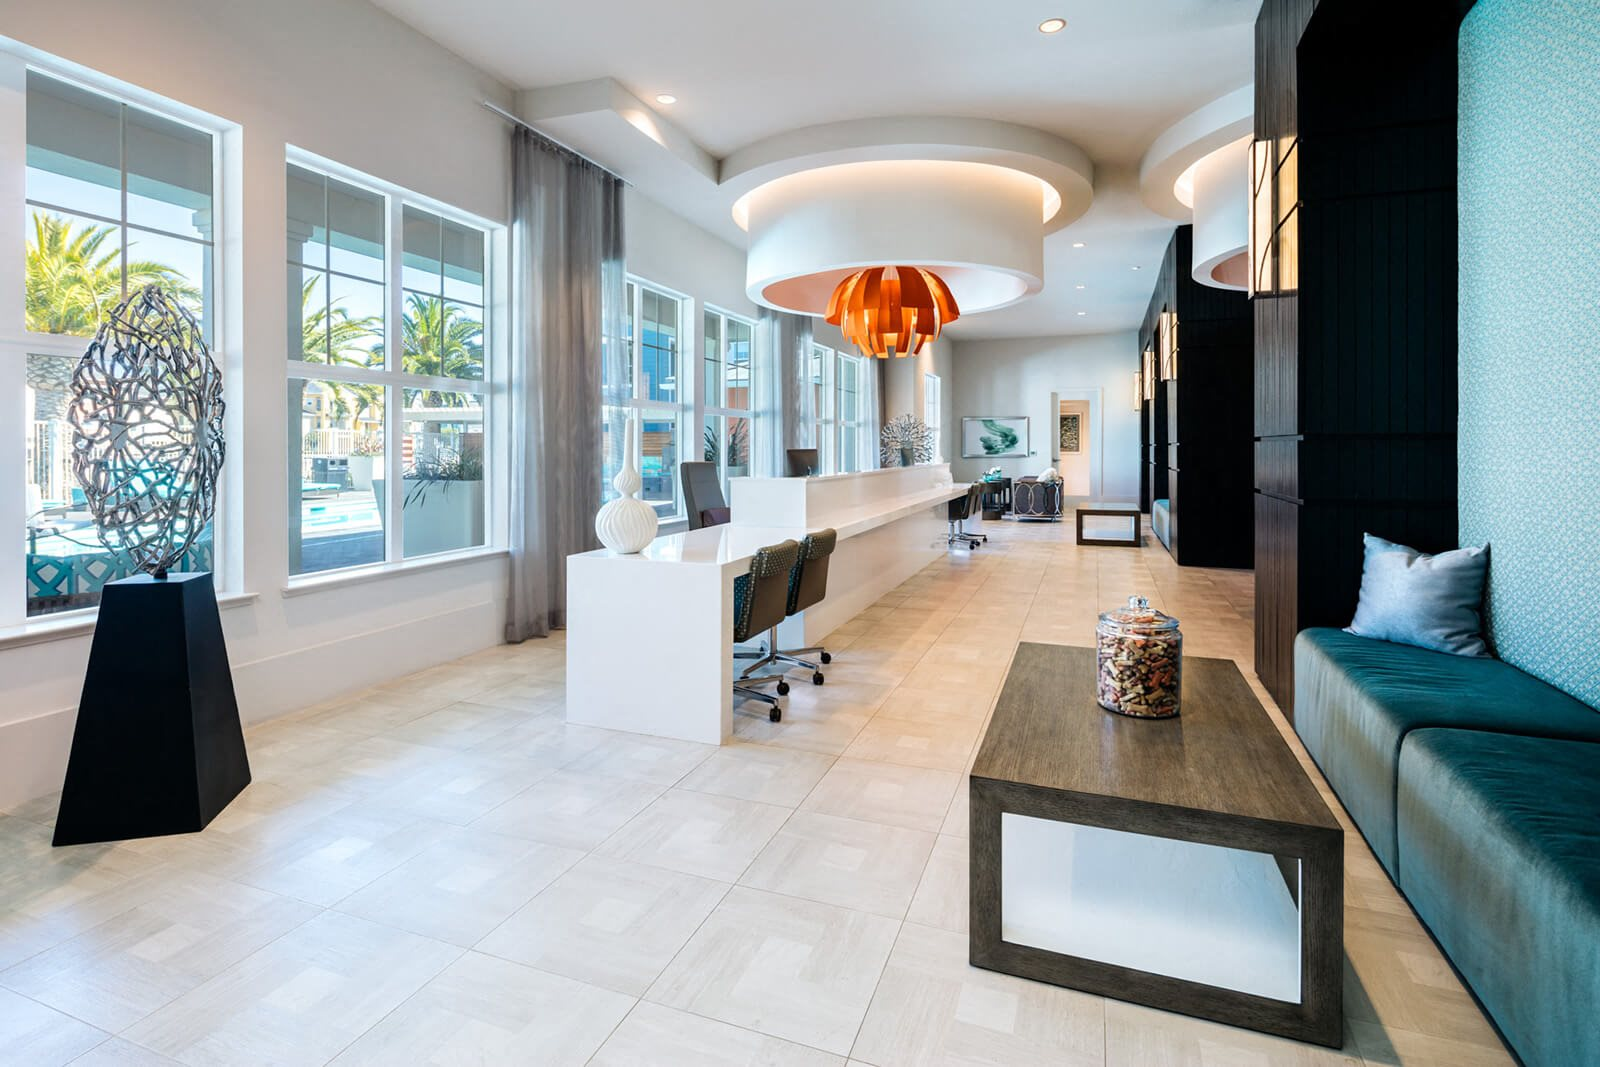 Access to Personal Concierge Services at Blu Harbor by Windsor, CA, 94063